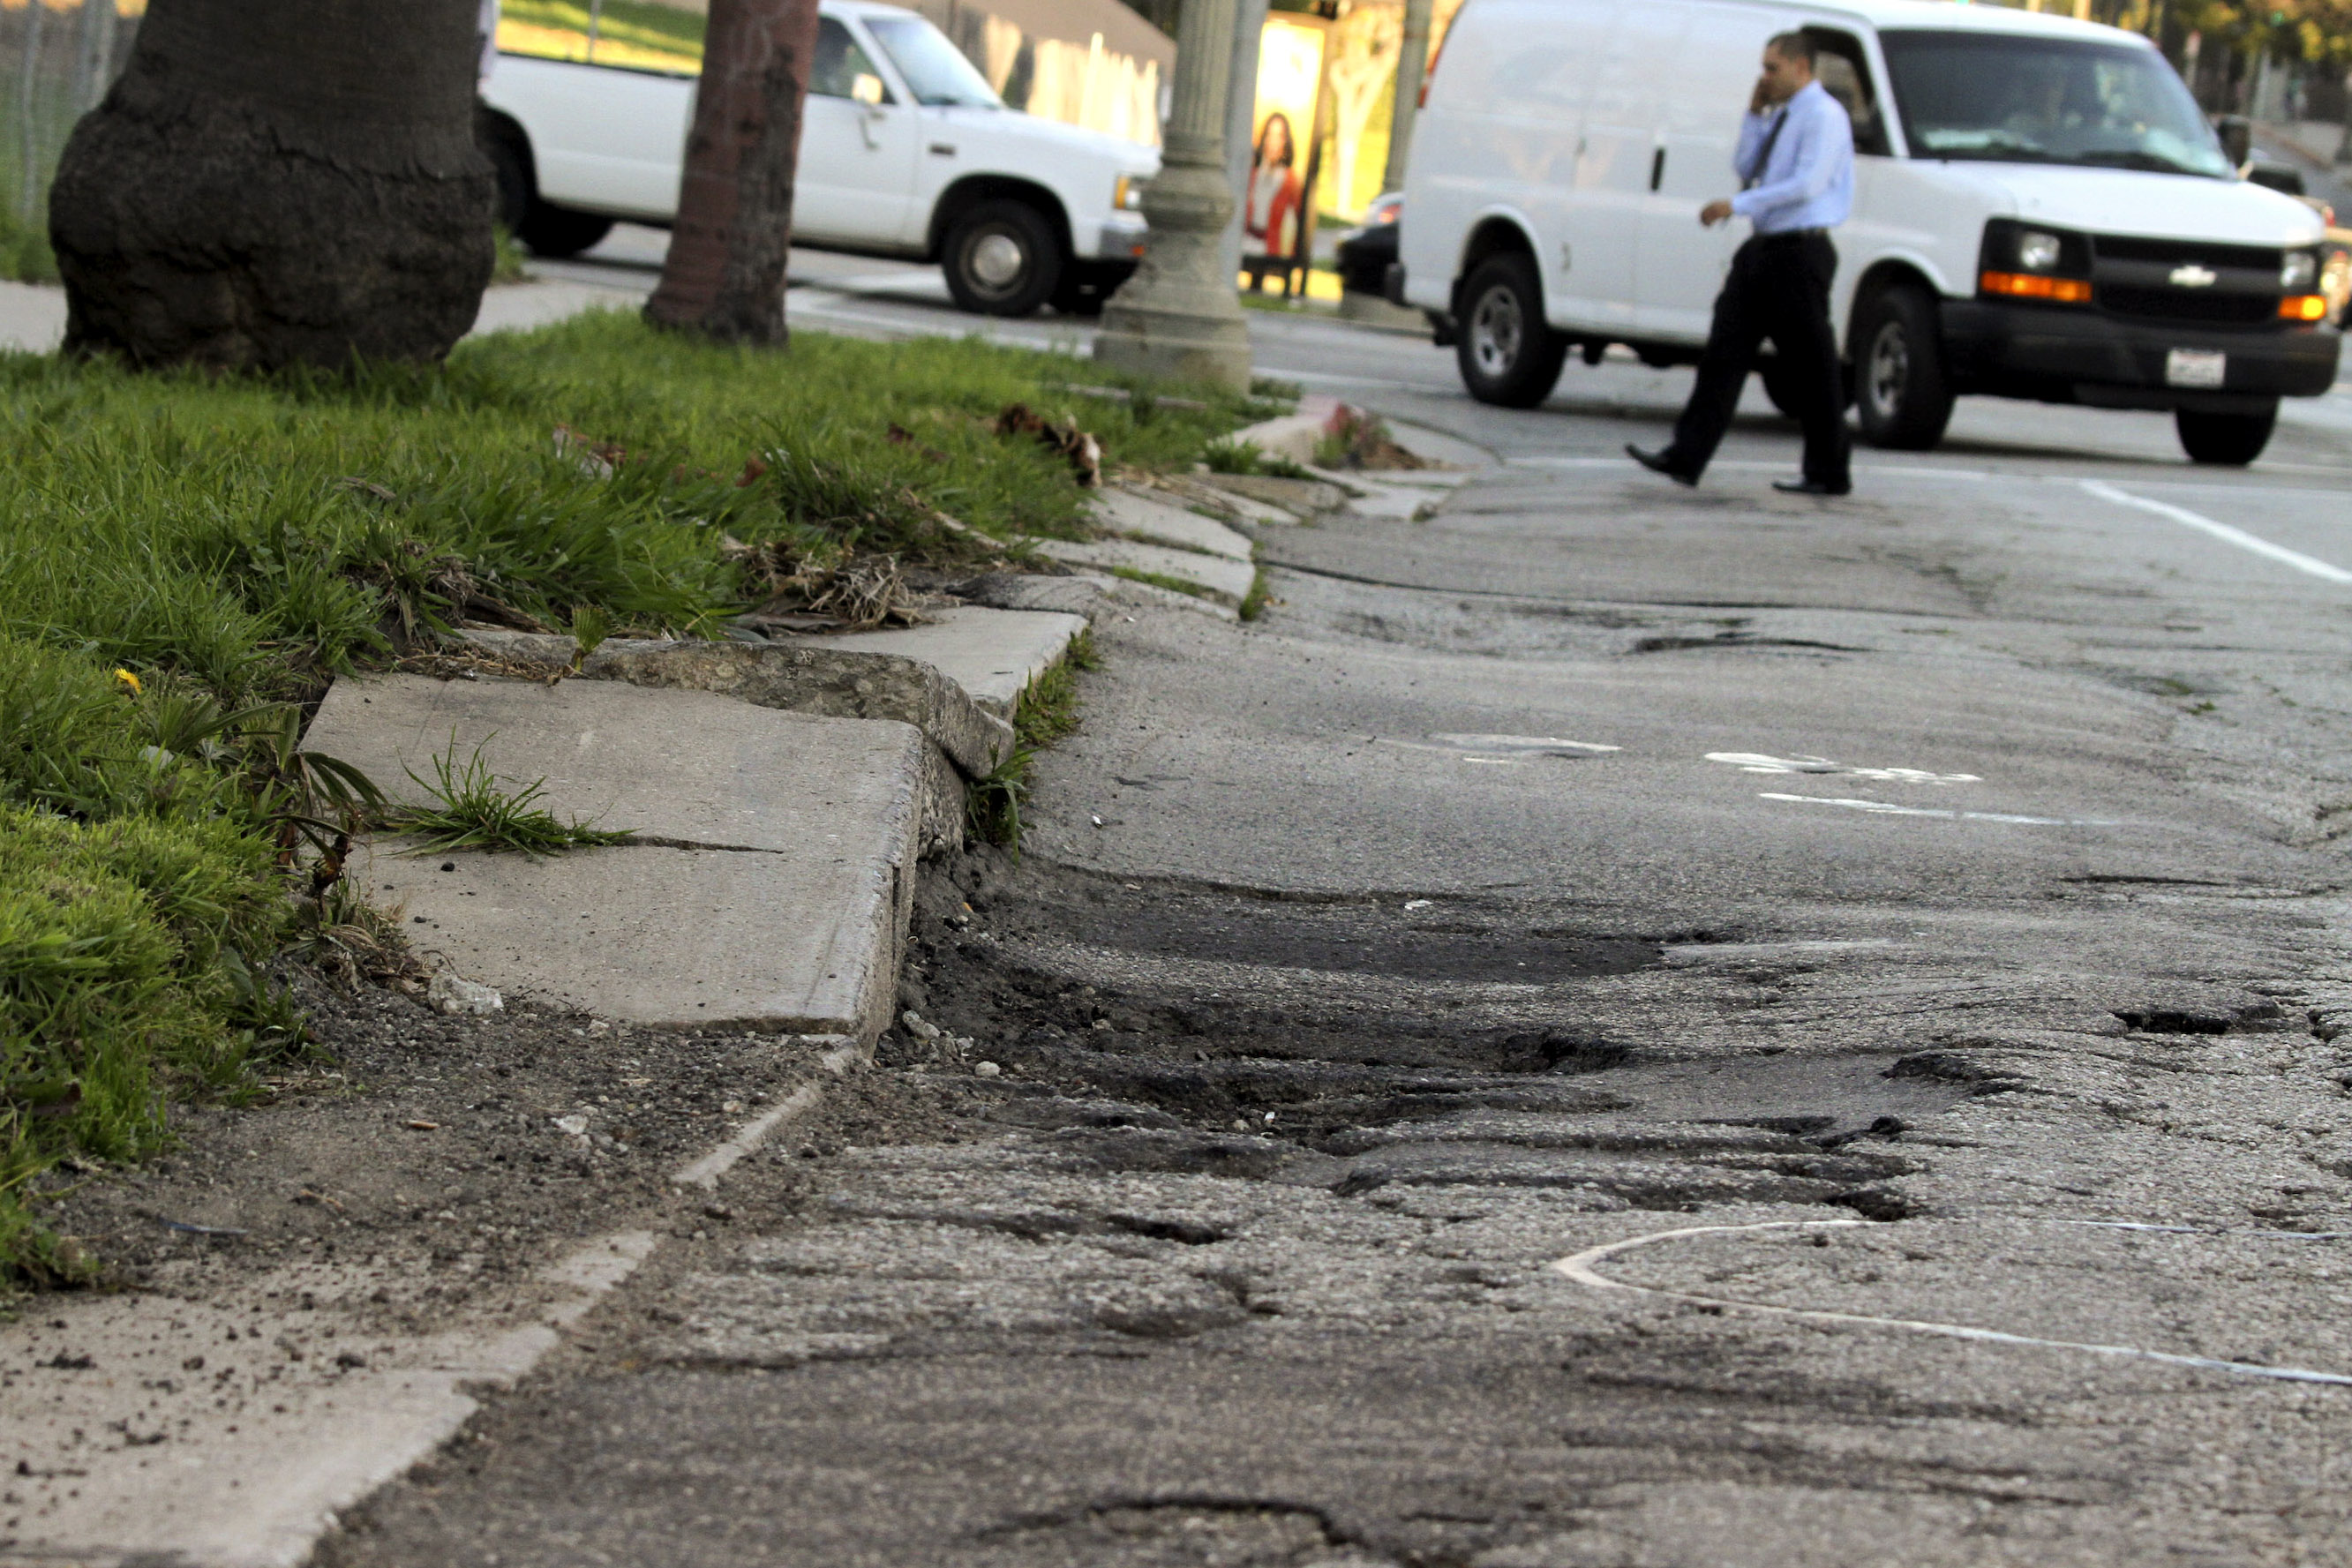 A pedestrian crosses the street past potholes and broken asphalt on Wilshire Boulevard in Los Angeles, California, U.S., on Friday, Jan. 21, 2011